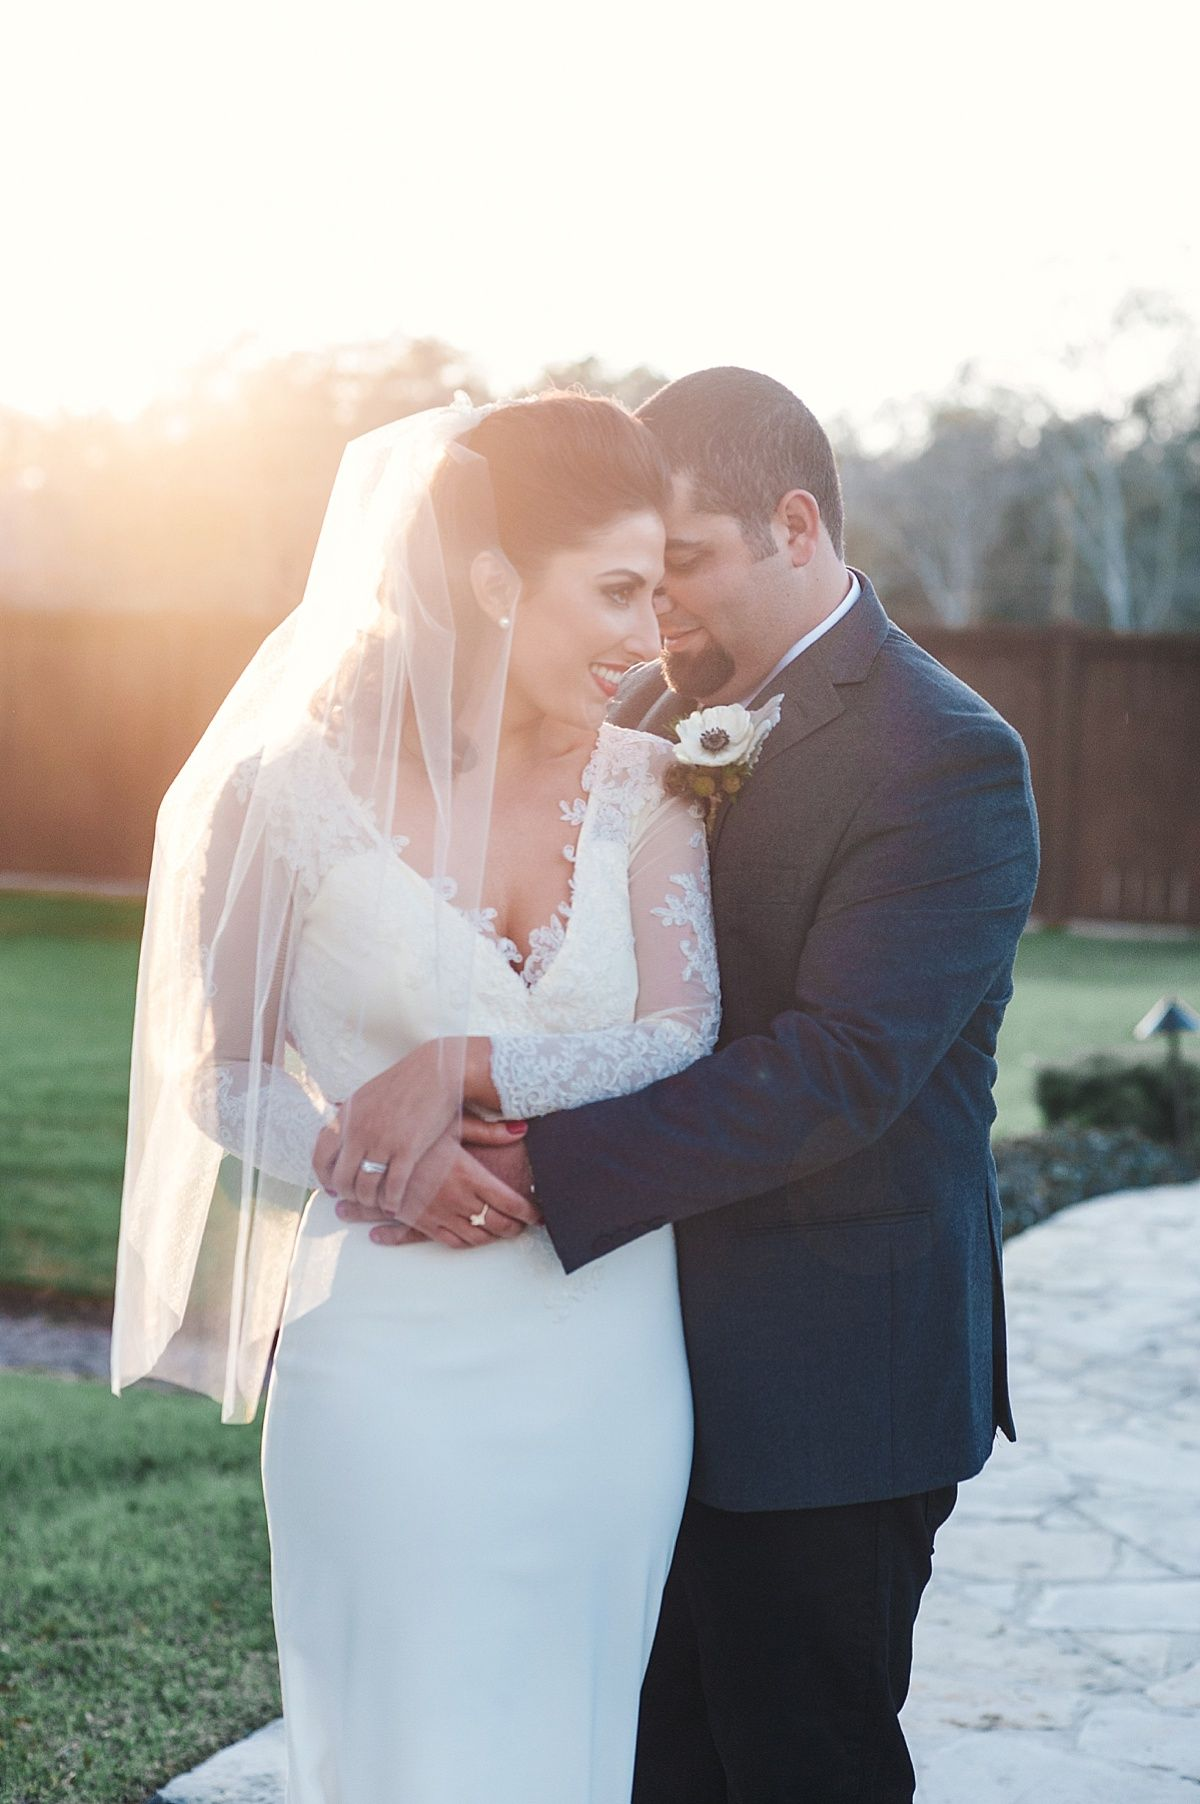 Adorable Wedding Photo Ideas | Photo: Lindsay Elizabeth Photography | Venue: The Springs Events